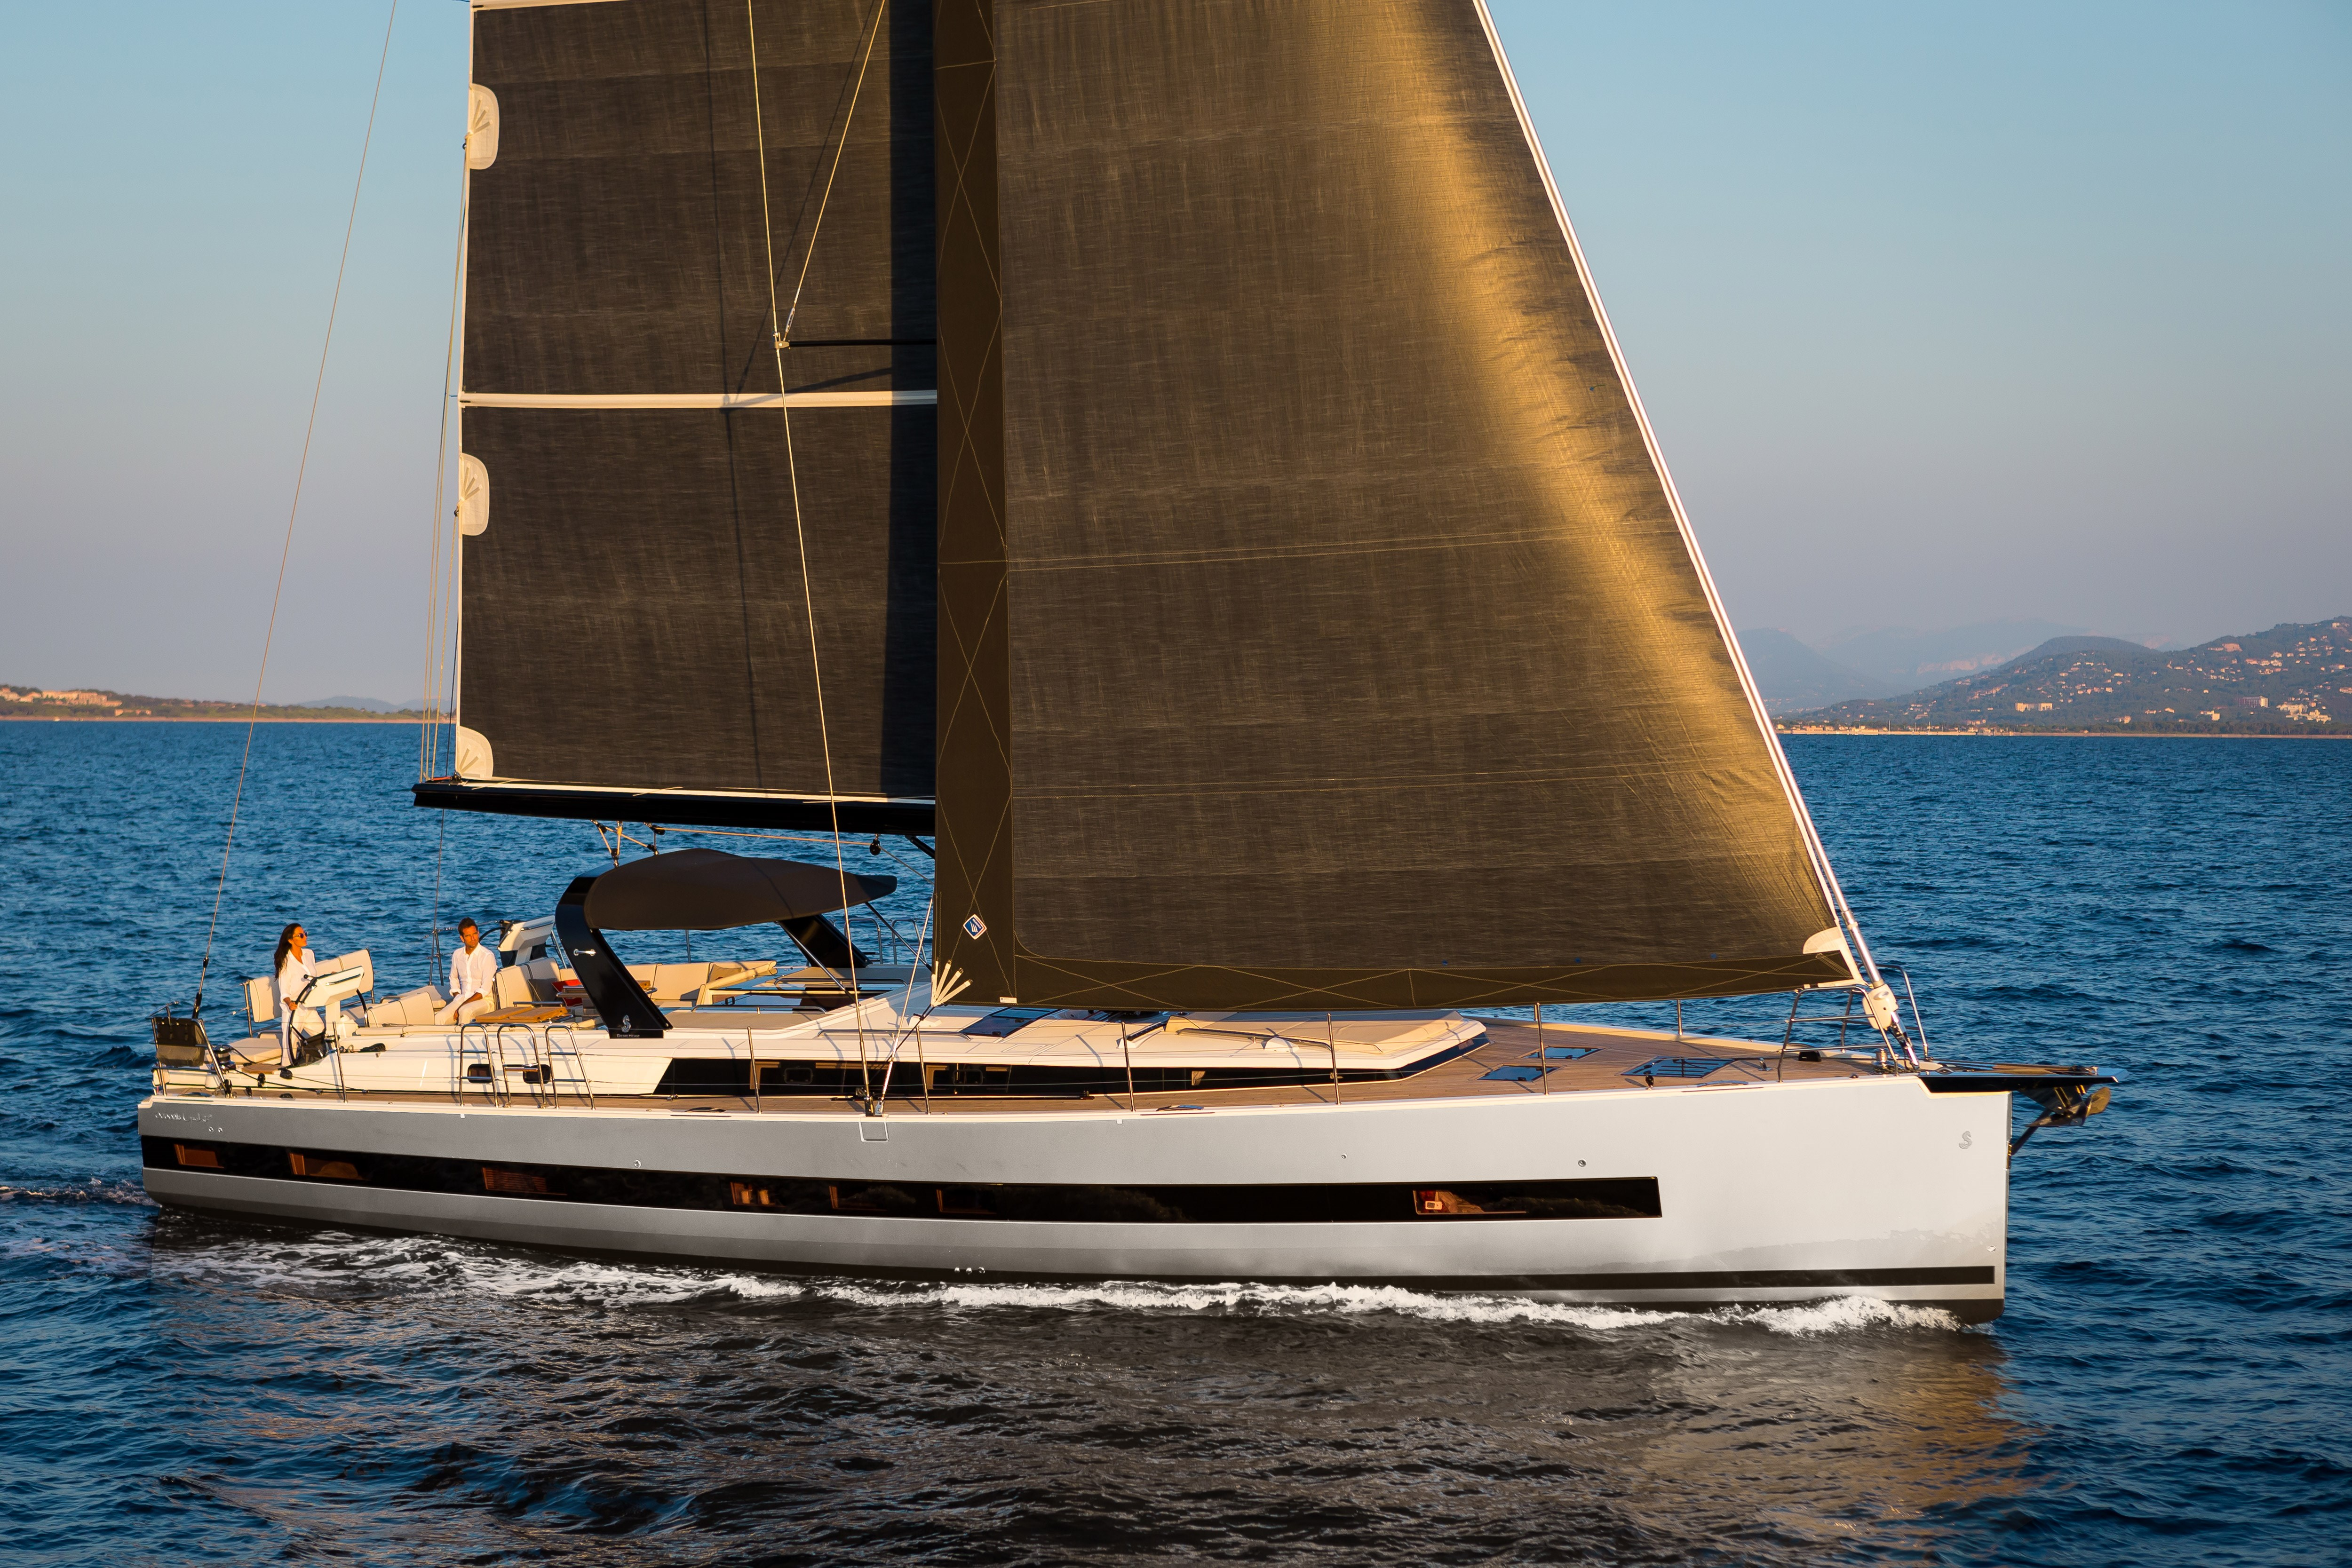 Beneteau Oceanis Yacht 62 External library picture